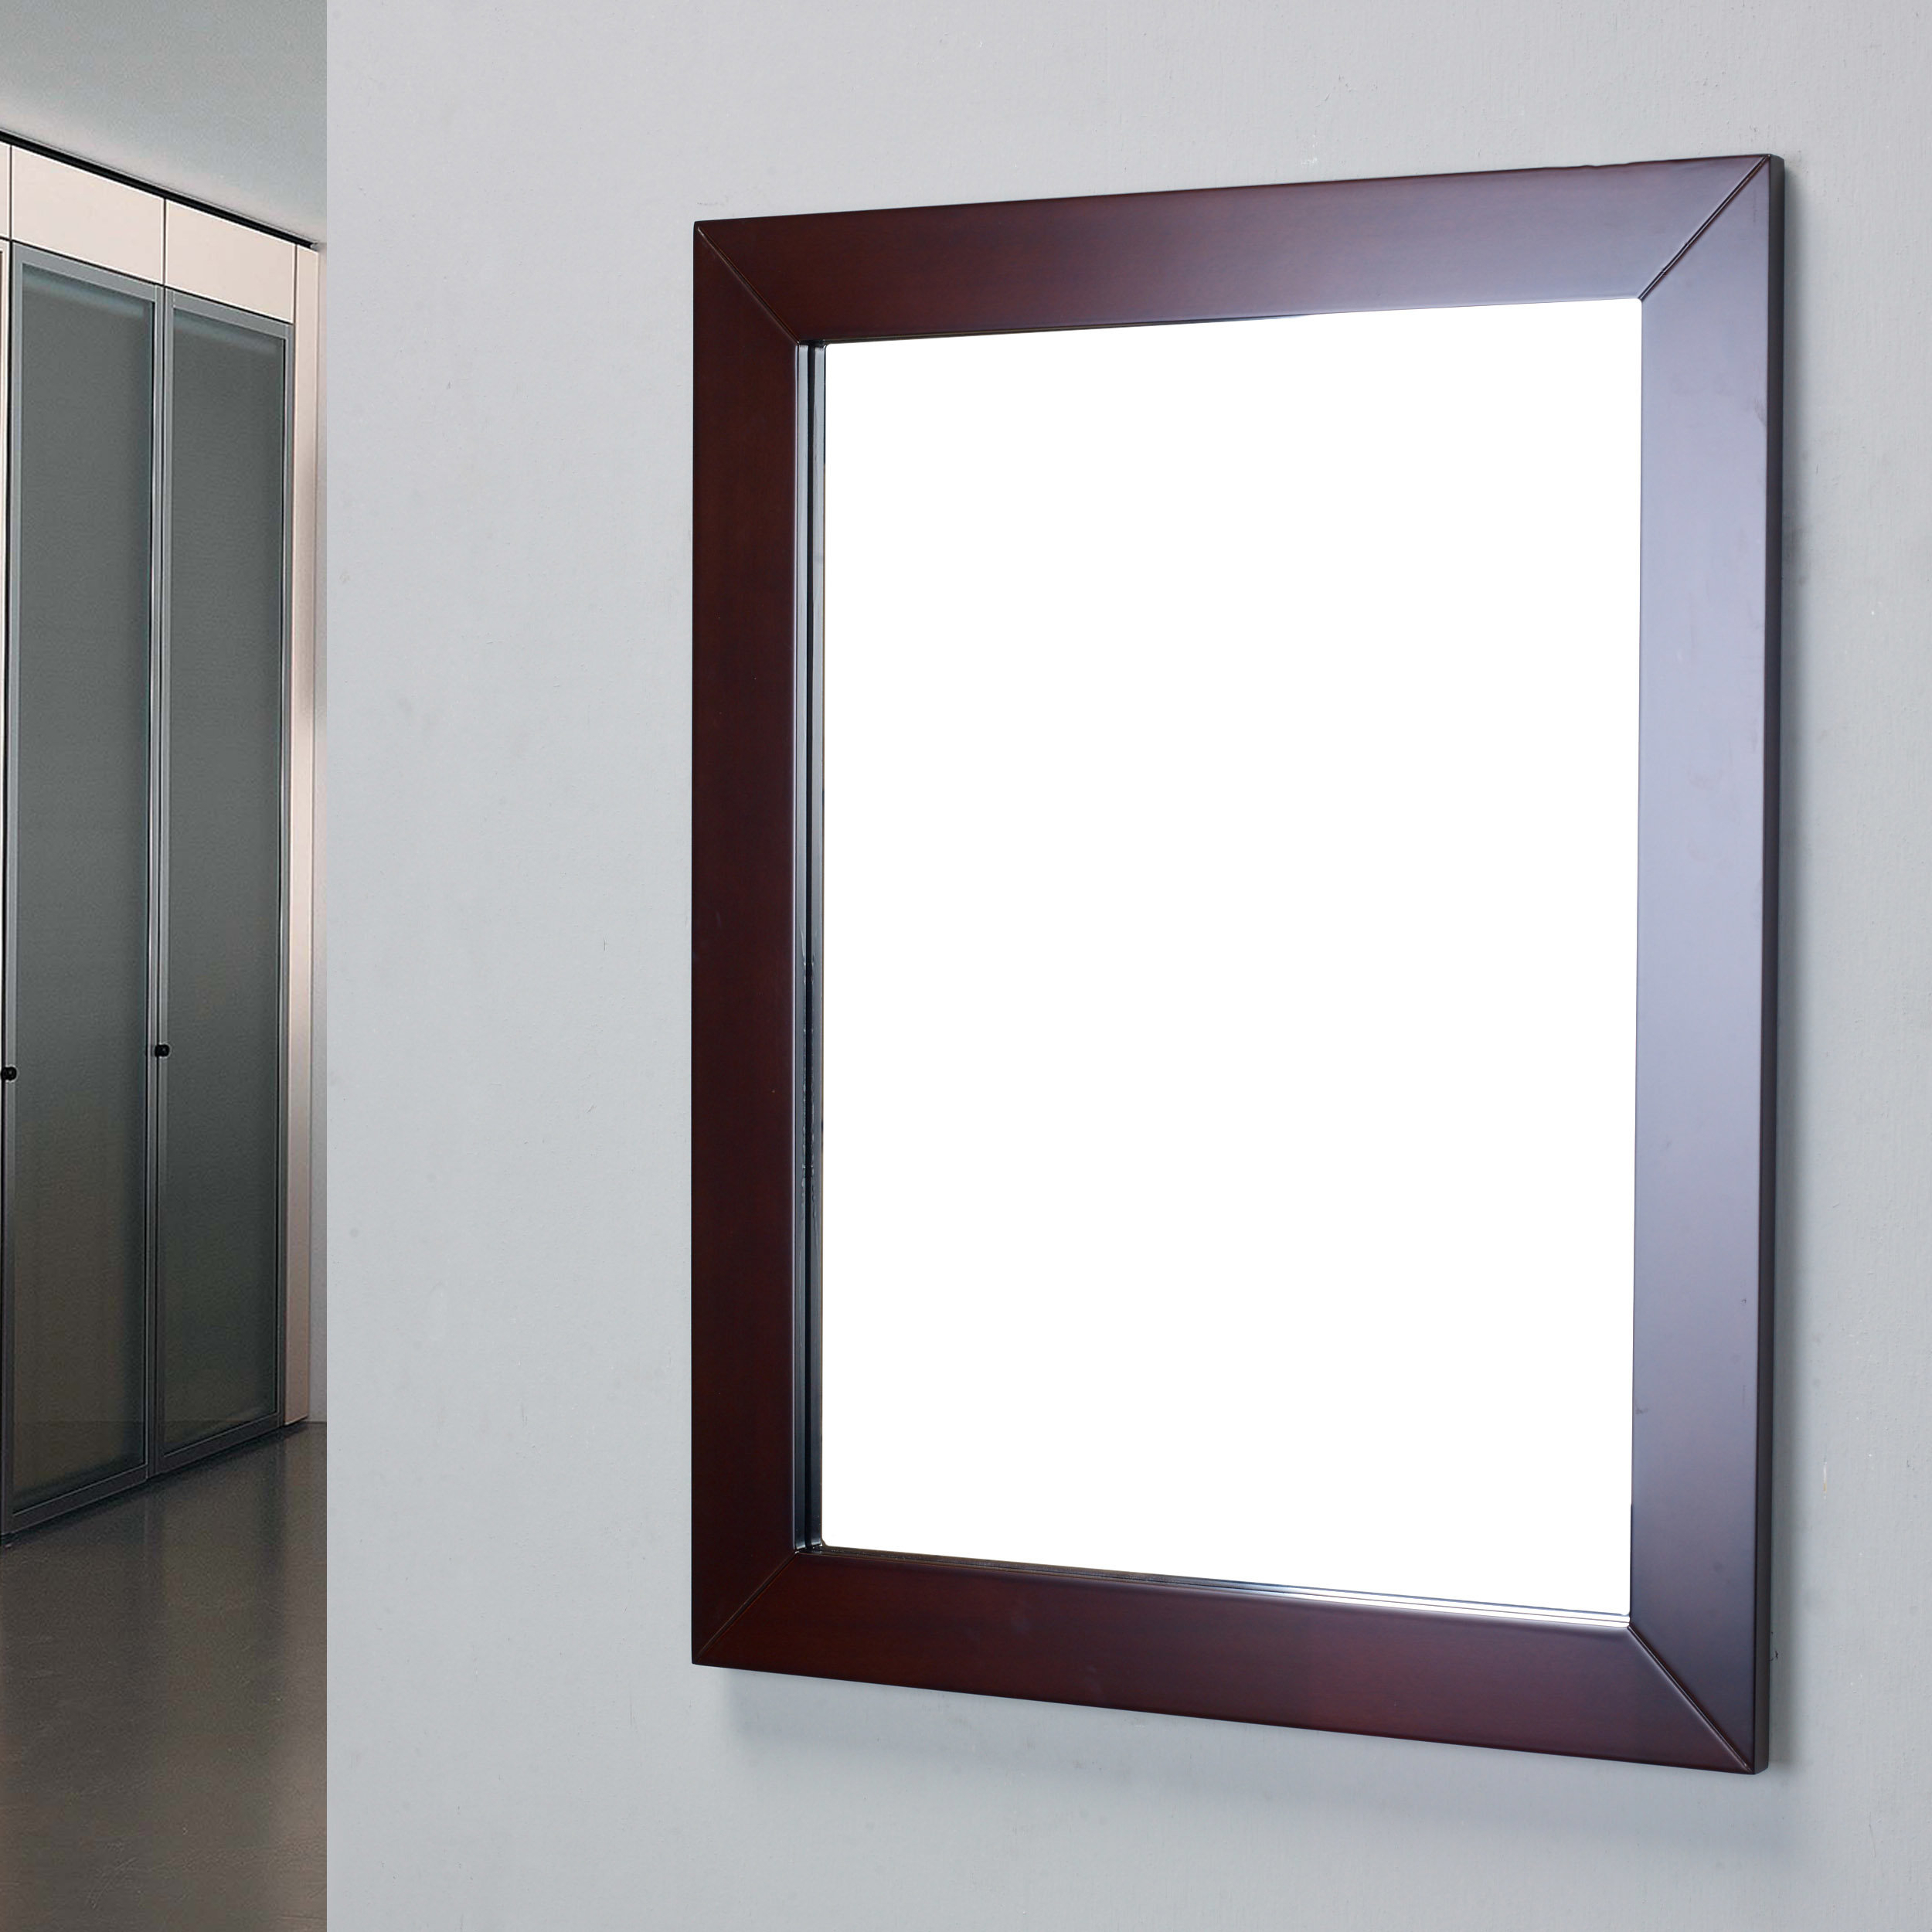 Frame Bathroom Wall Mirrors For Latest Piccirillo Modern Framed Bathroom Wall Mirror (View 18 of 20)